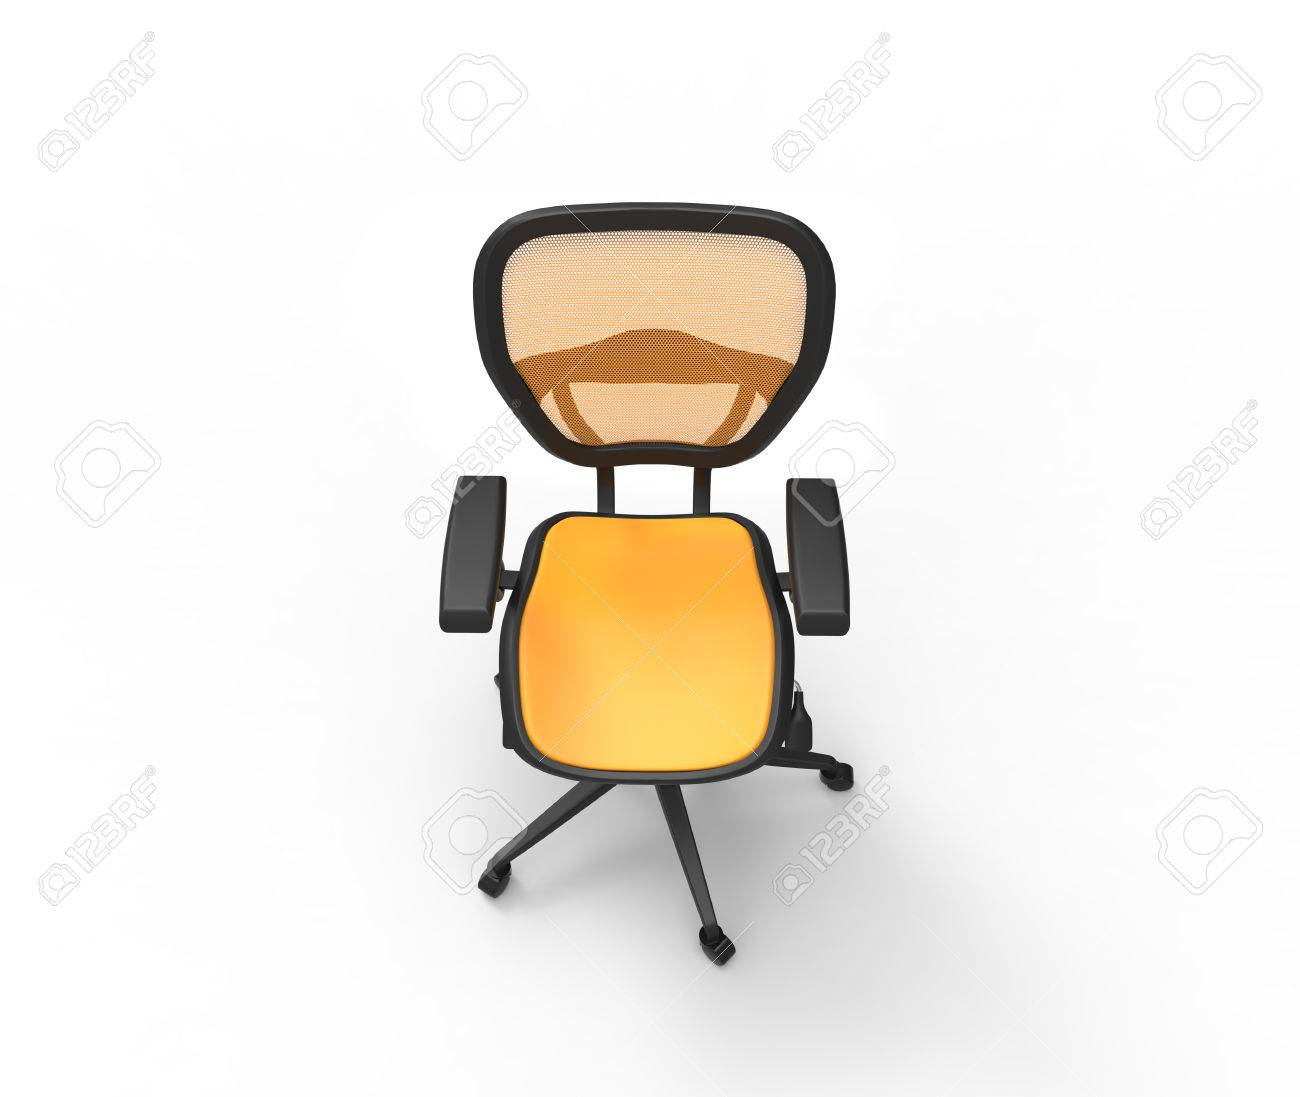 Orange Office Chair Top View Stock Photo, Picture And Royalty Free ...